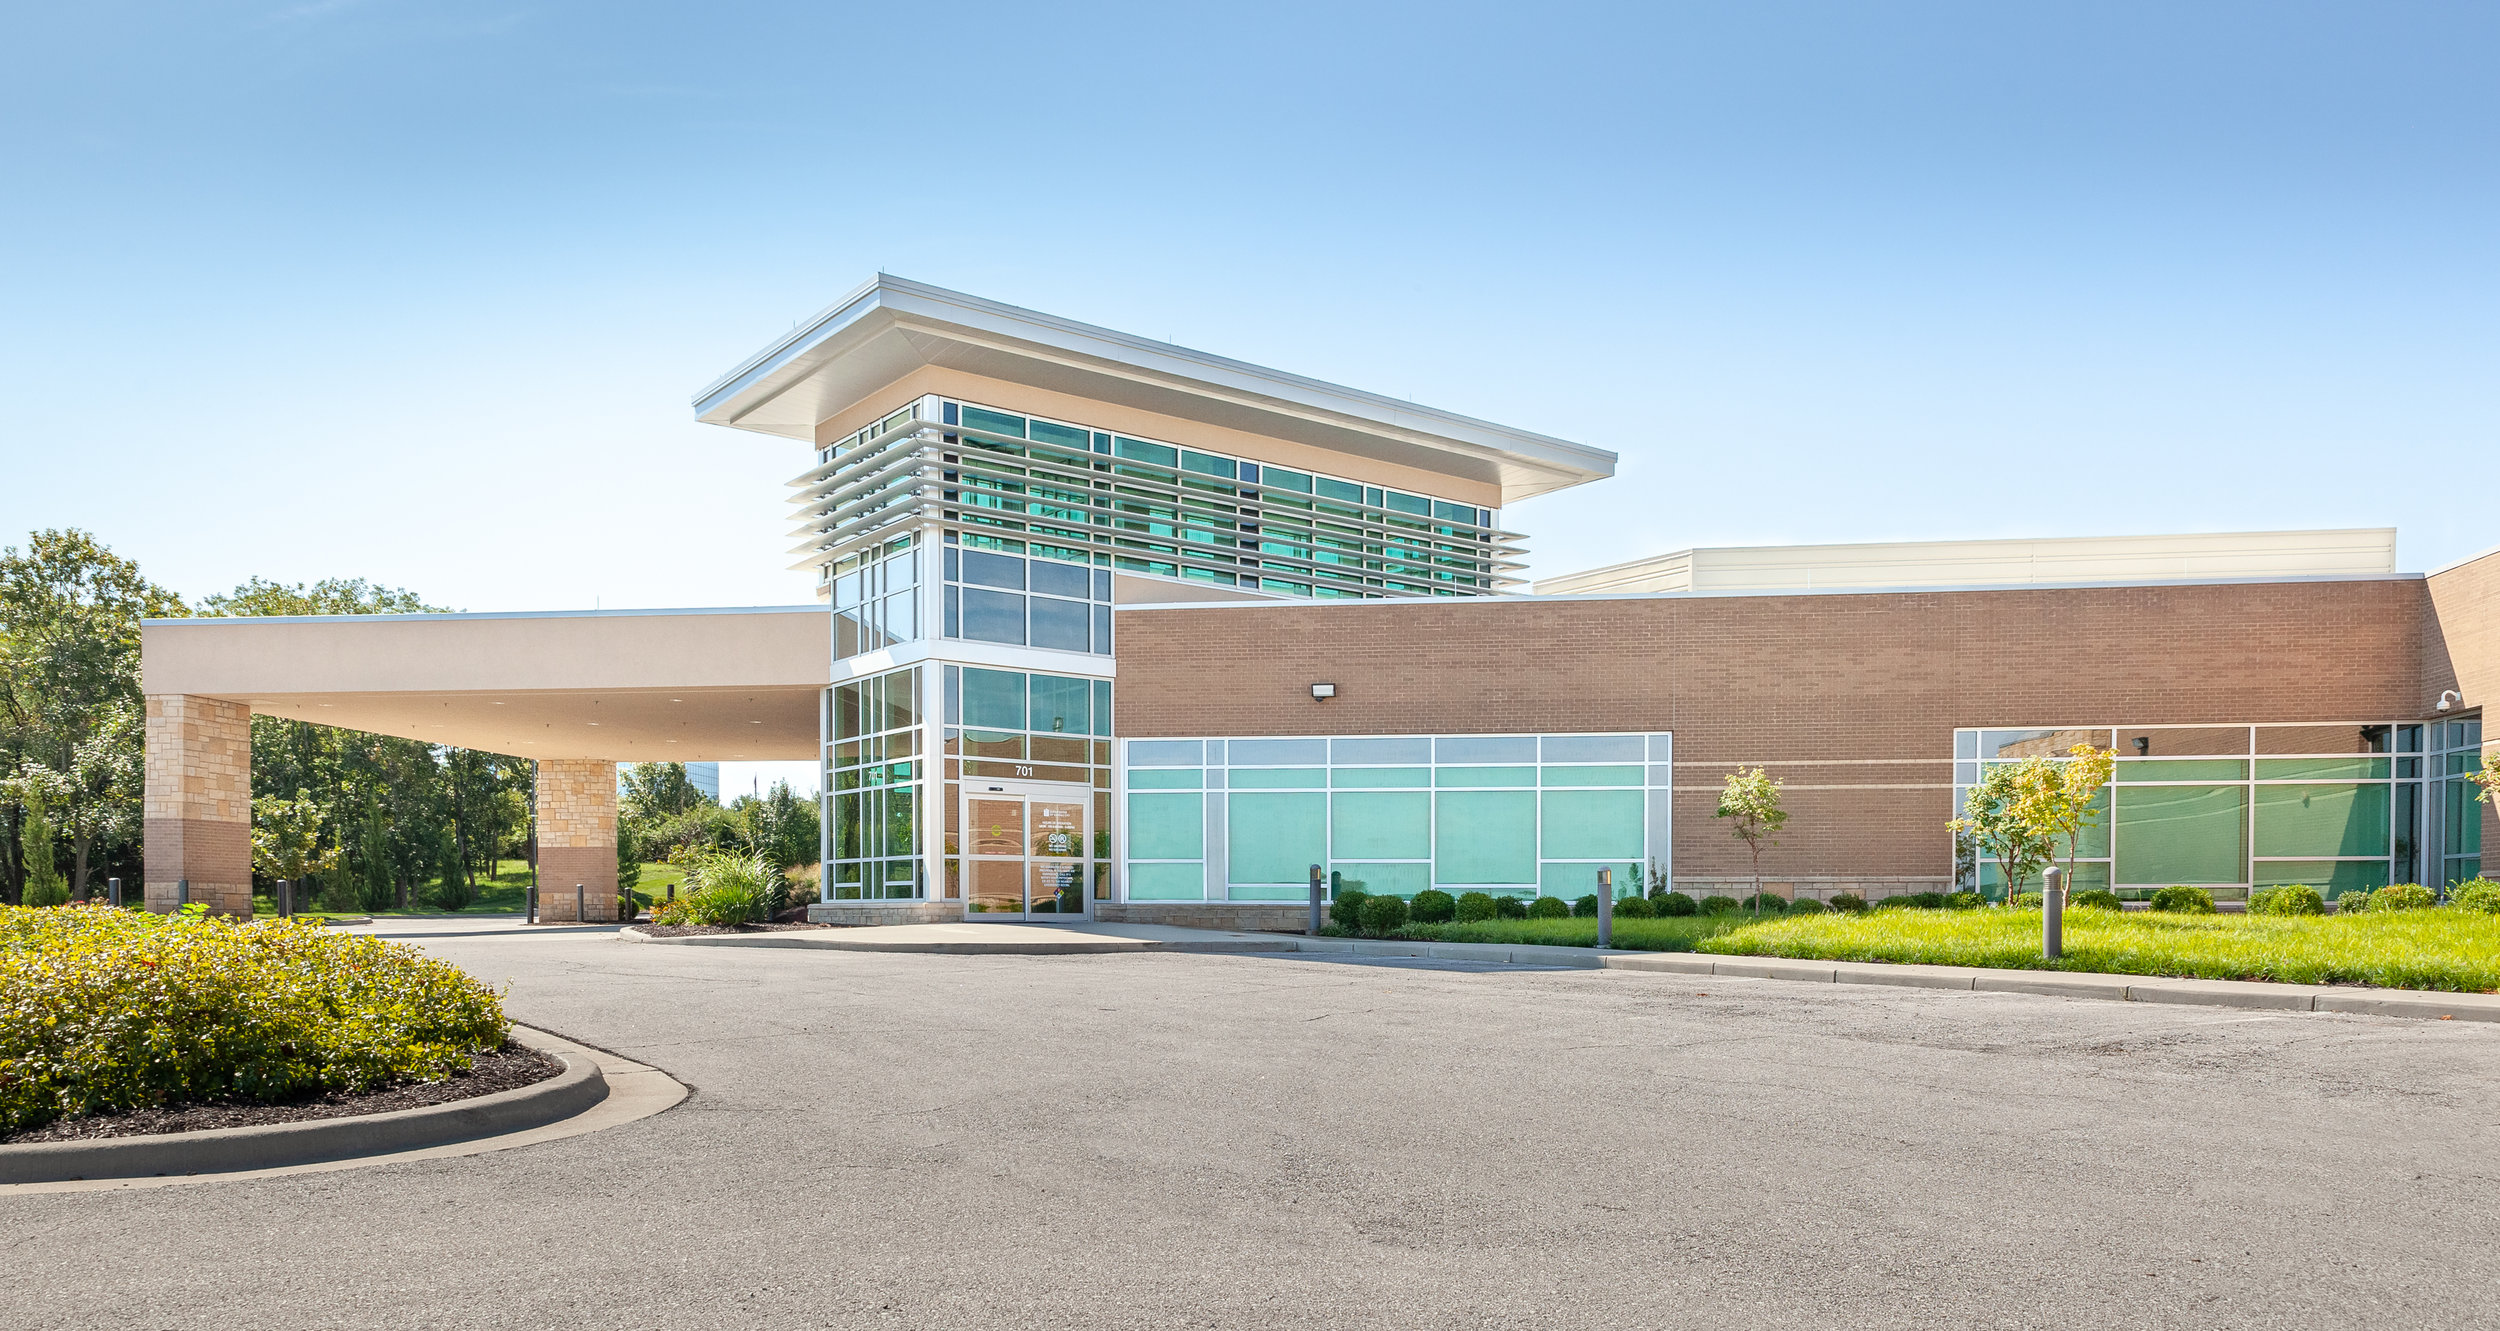 Surgicenter-of-Kansas-City-for-Hereford-Dooley-Architects-by-Jacia-Phillips--2.jpg